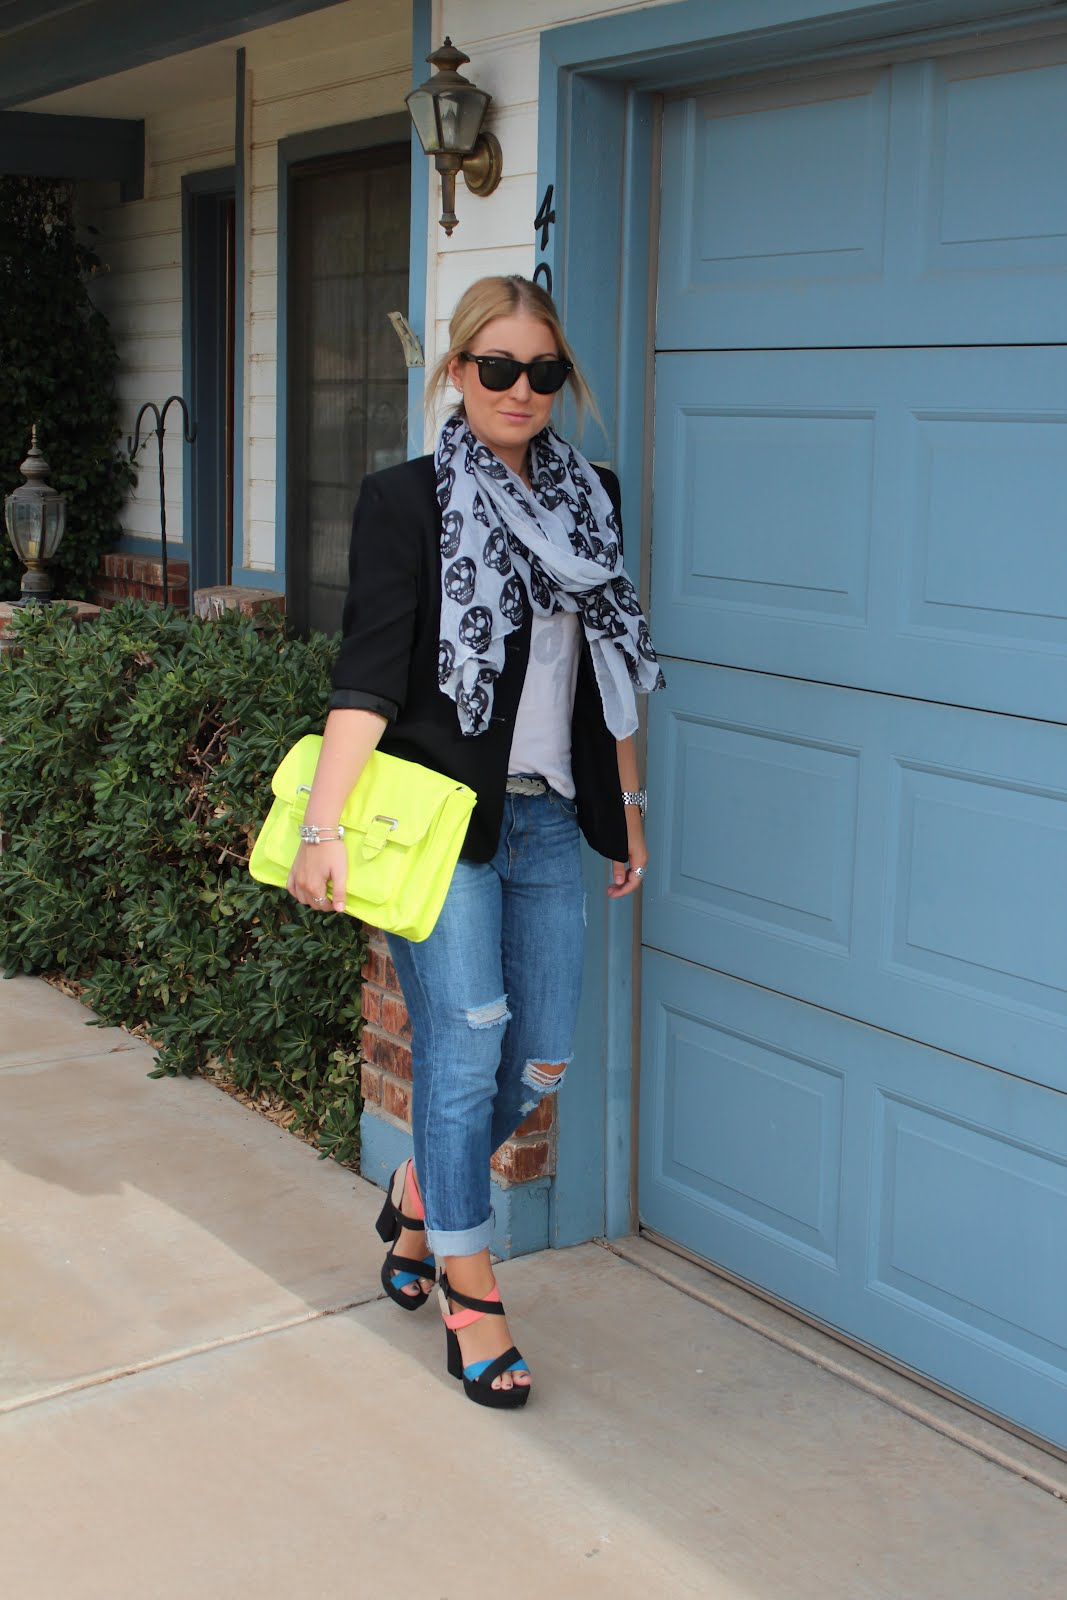 Sincerely Truly Scrumptious Outfit Post Polished Casual